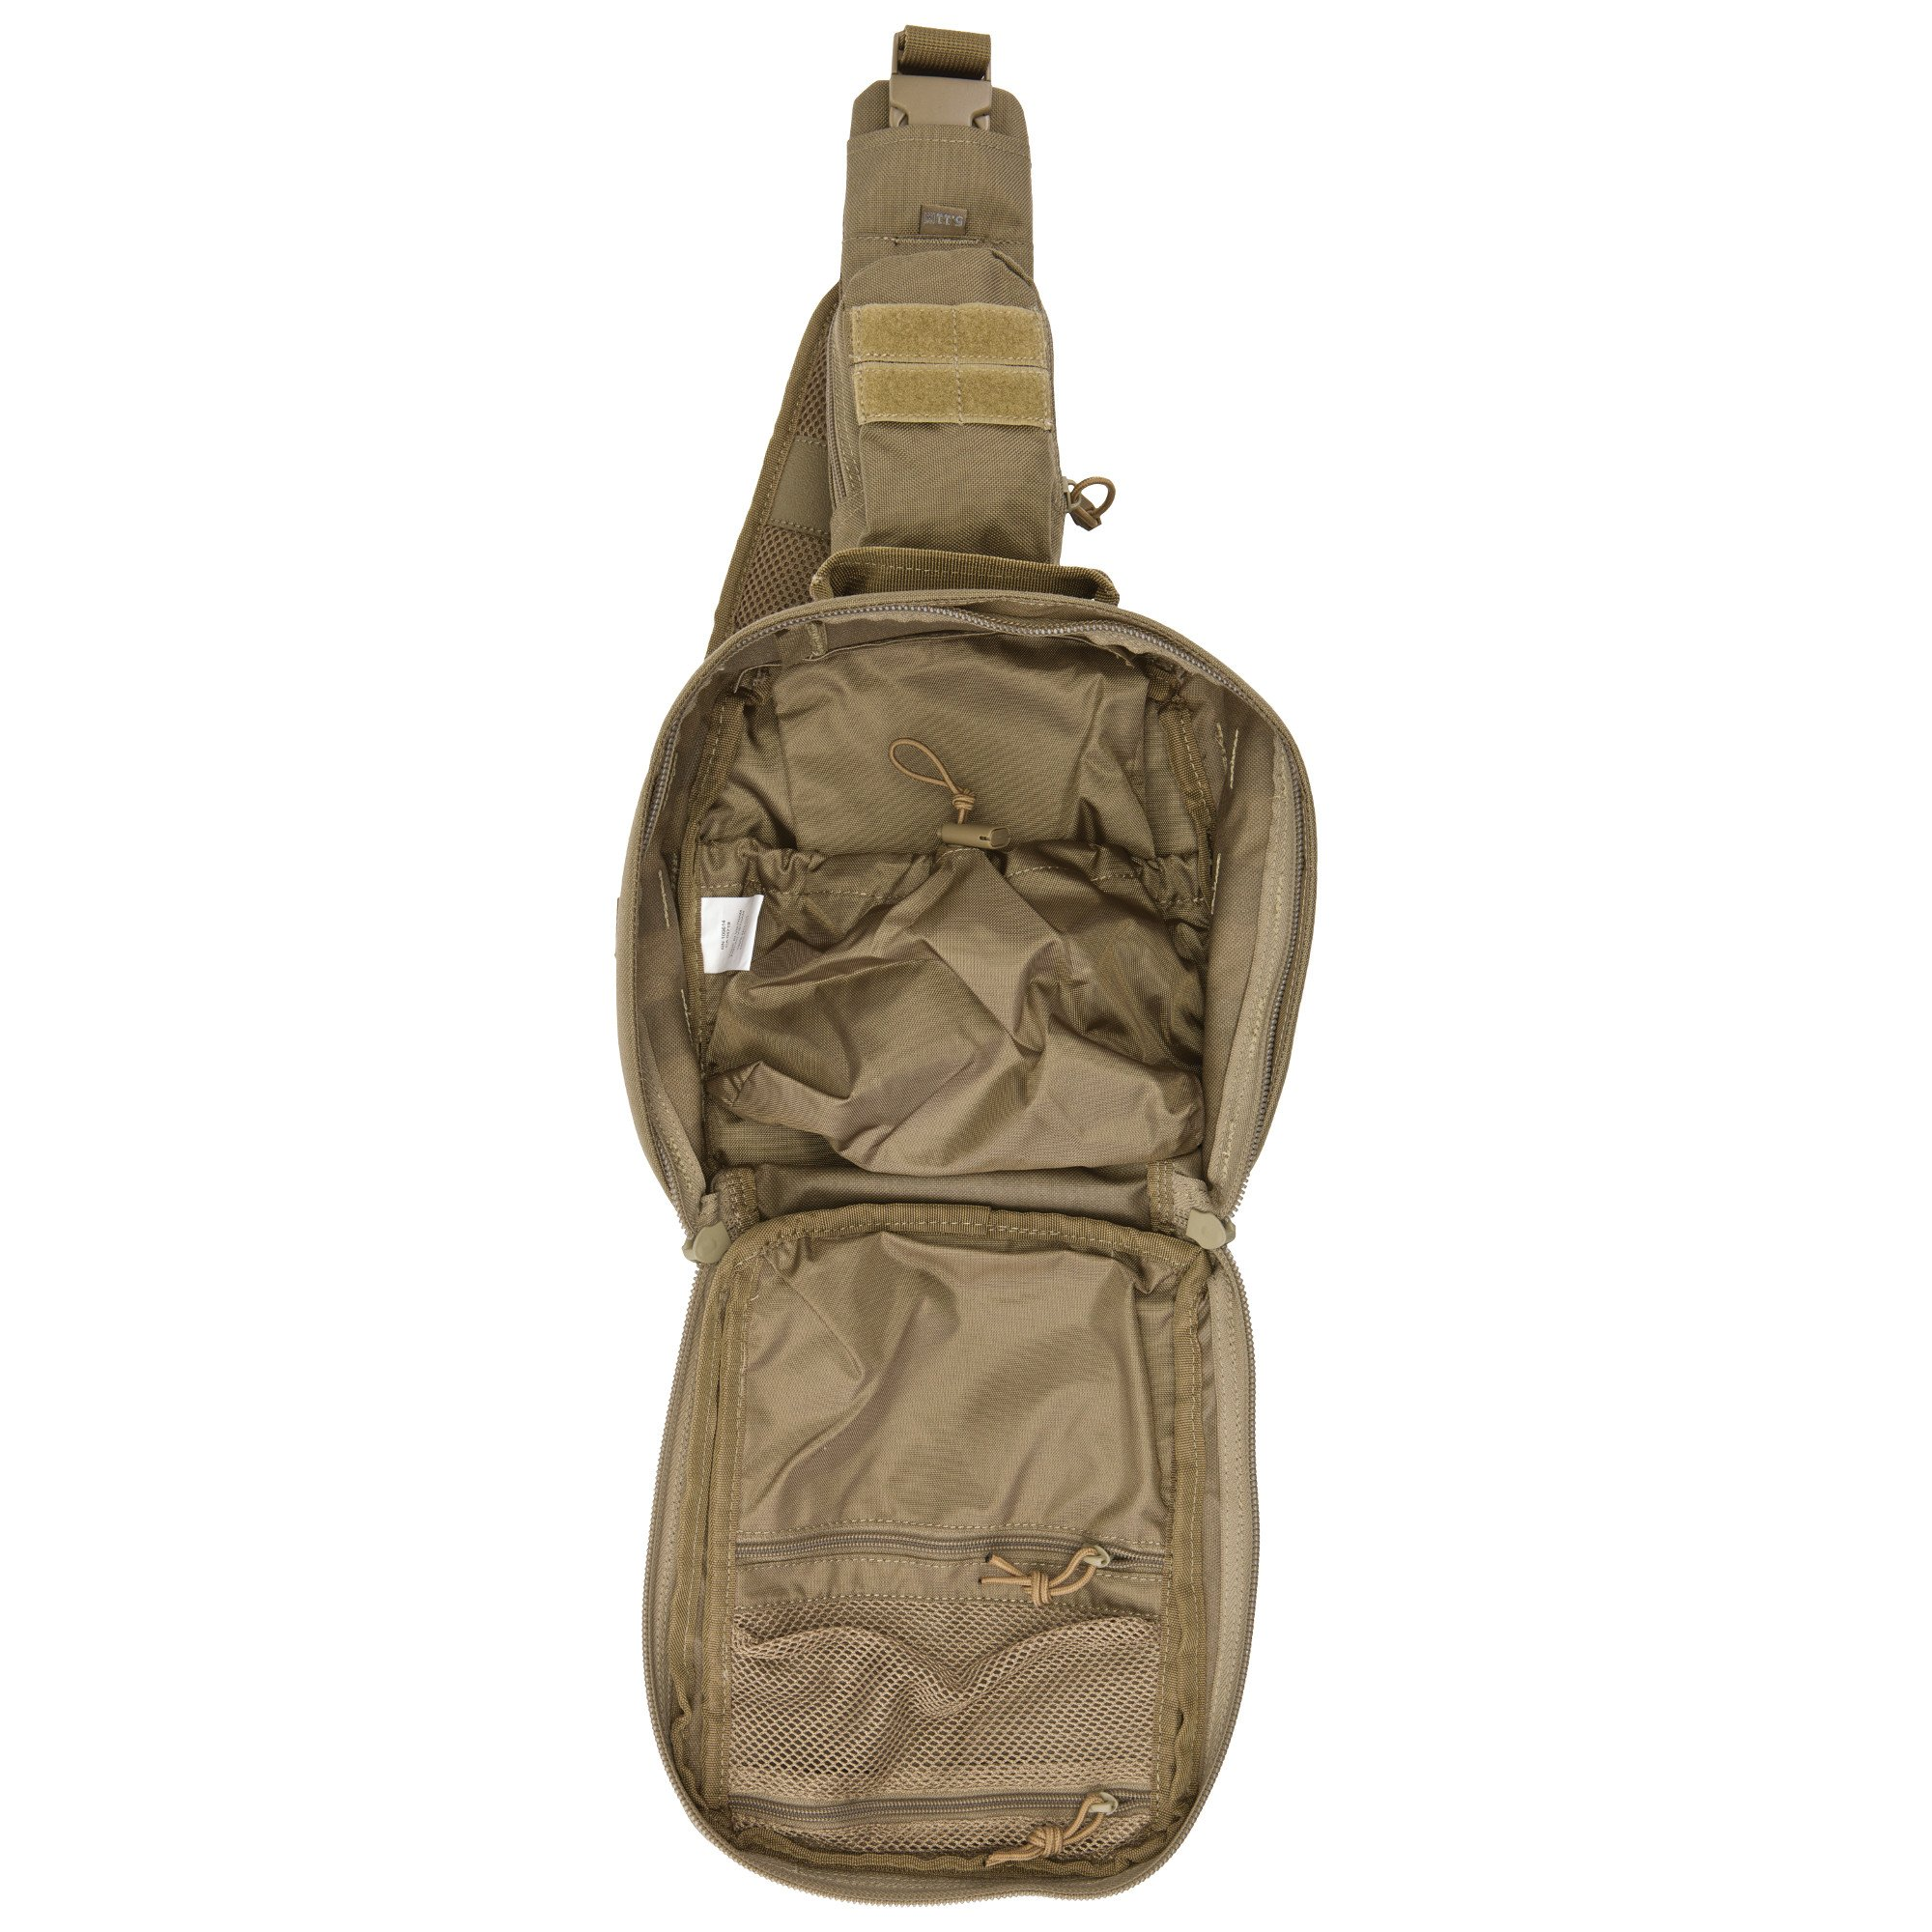 Balo 5.11 Tactical Rush Moab 6 – Sandstone